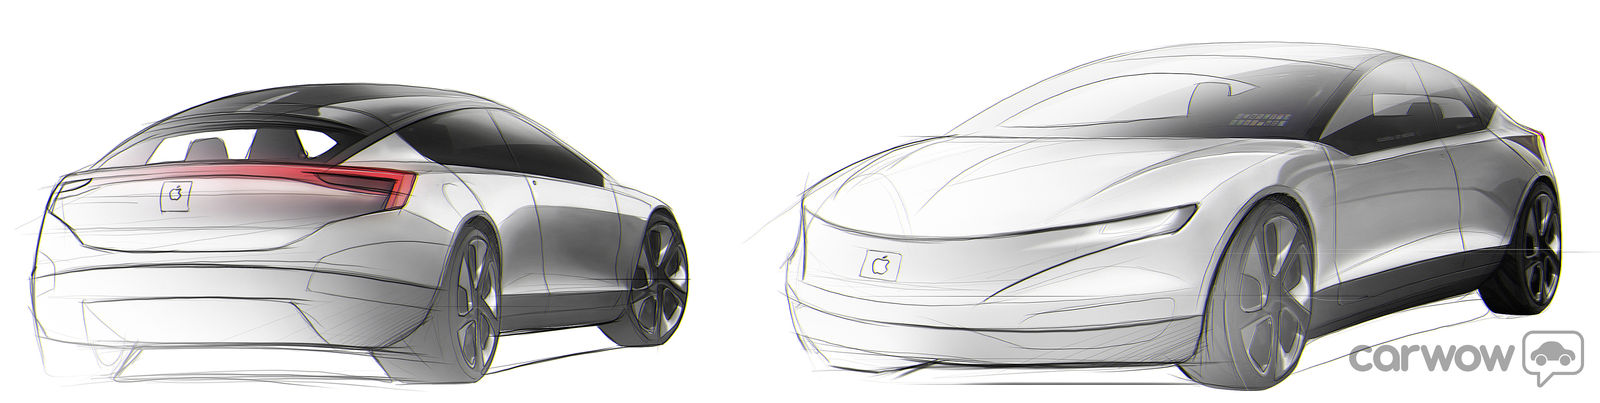 apple-car-sketches.jpg